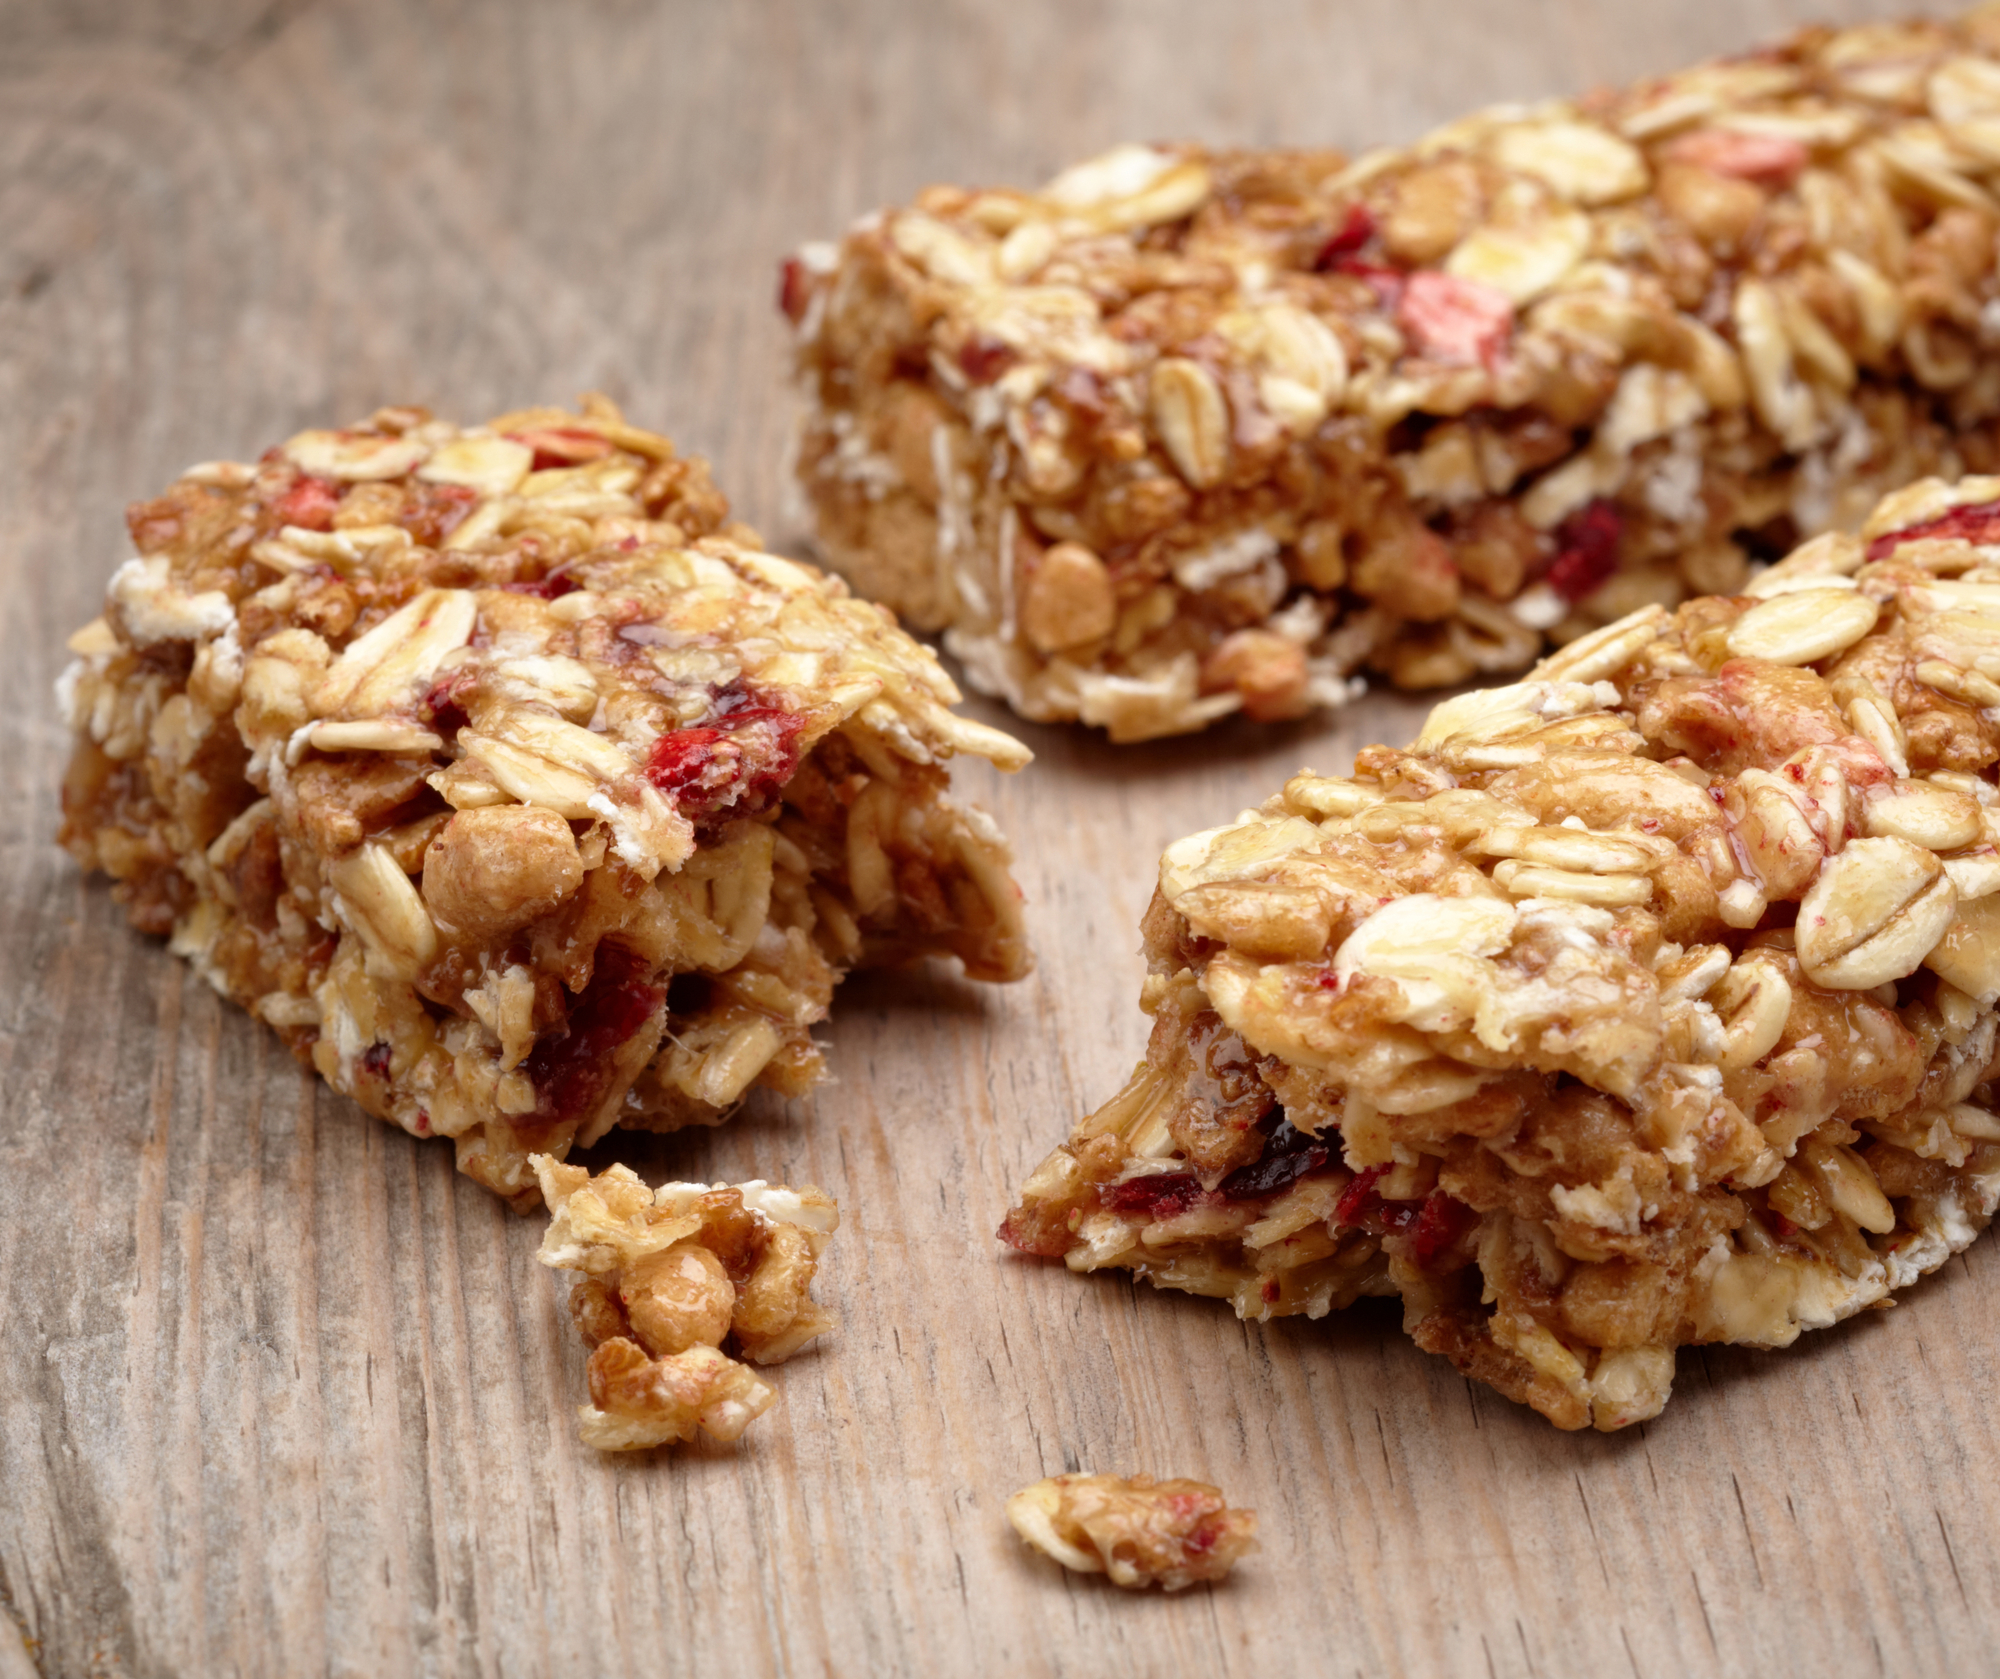 Pieces of oat fruit and nut bars on a table top